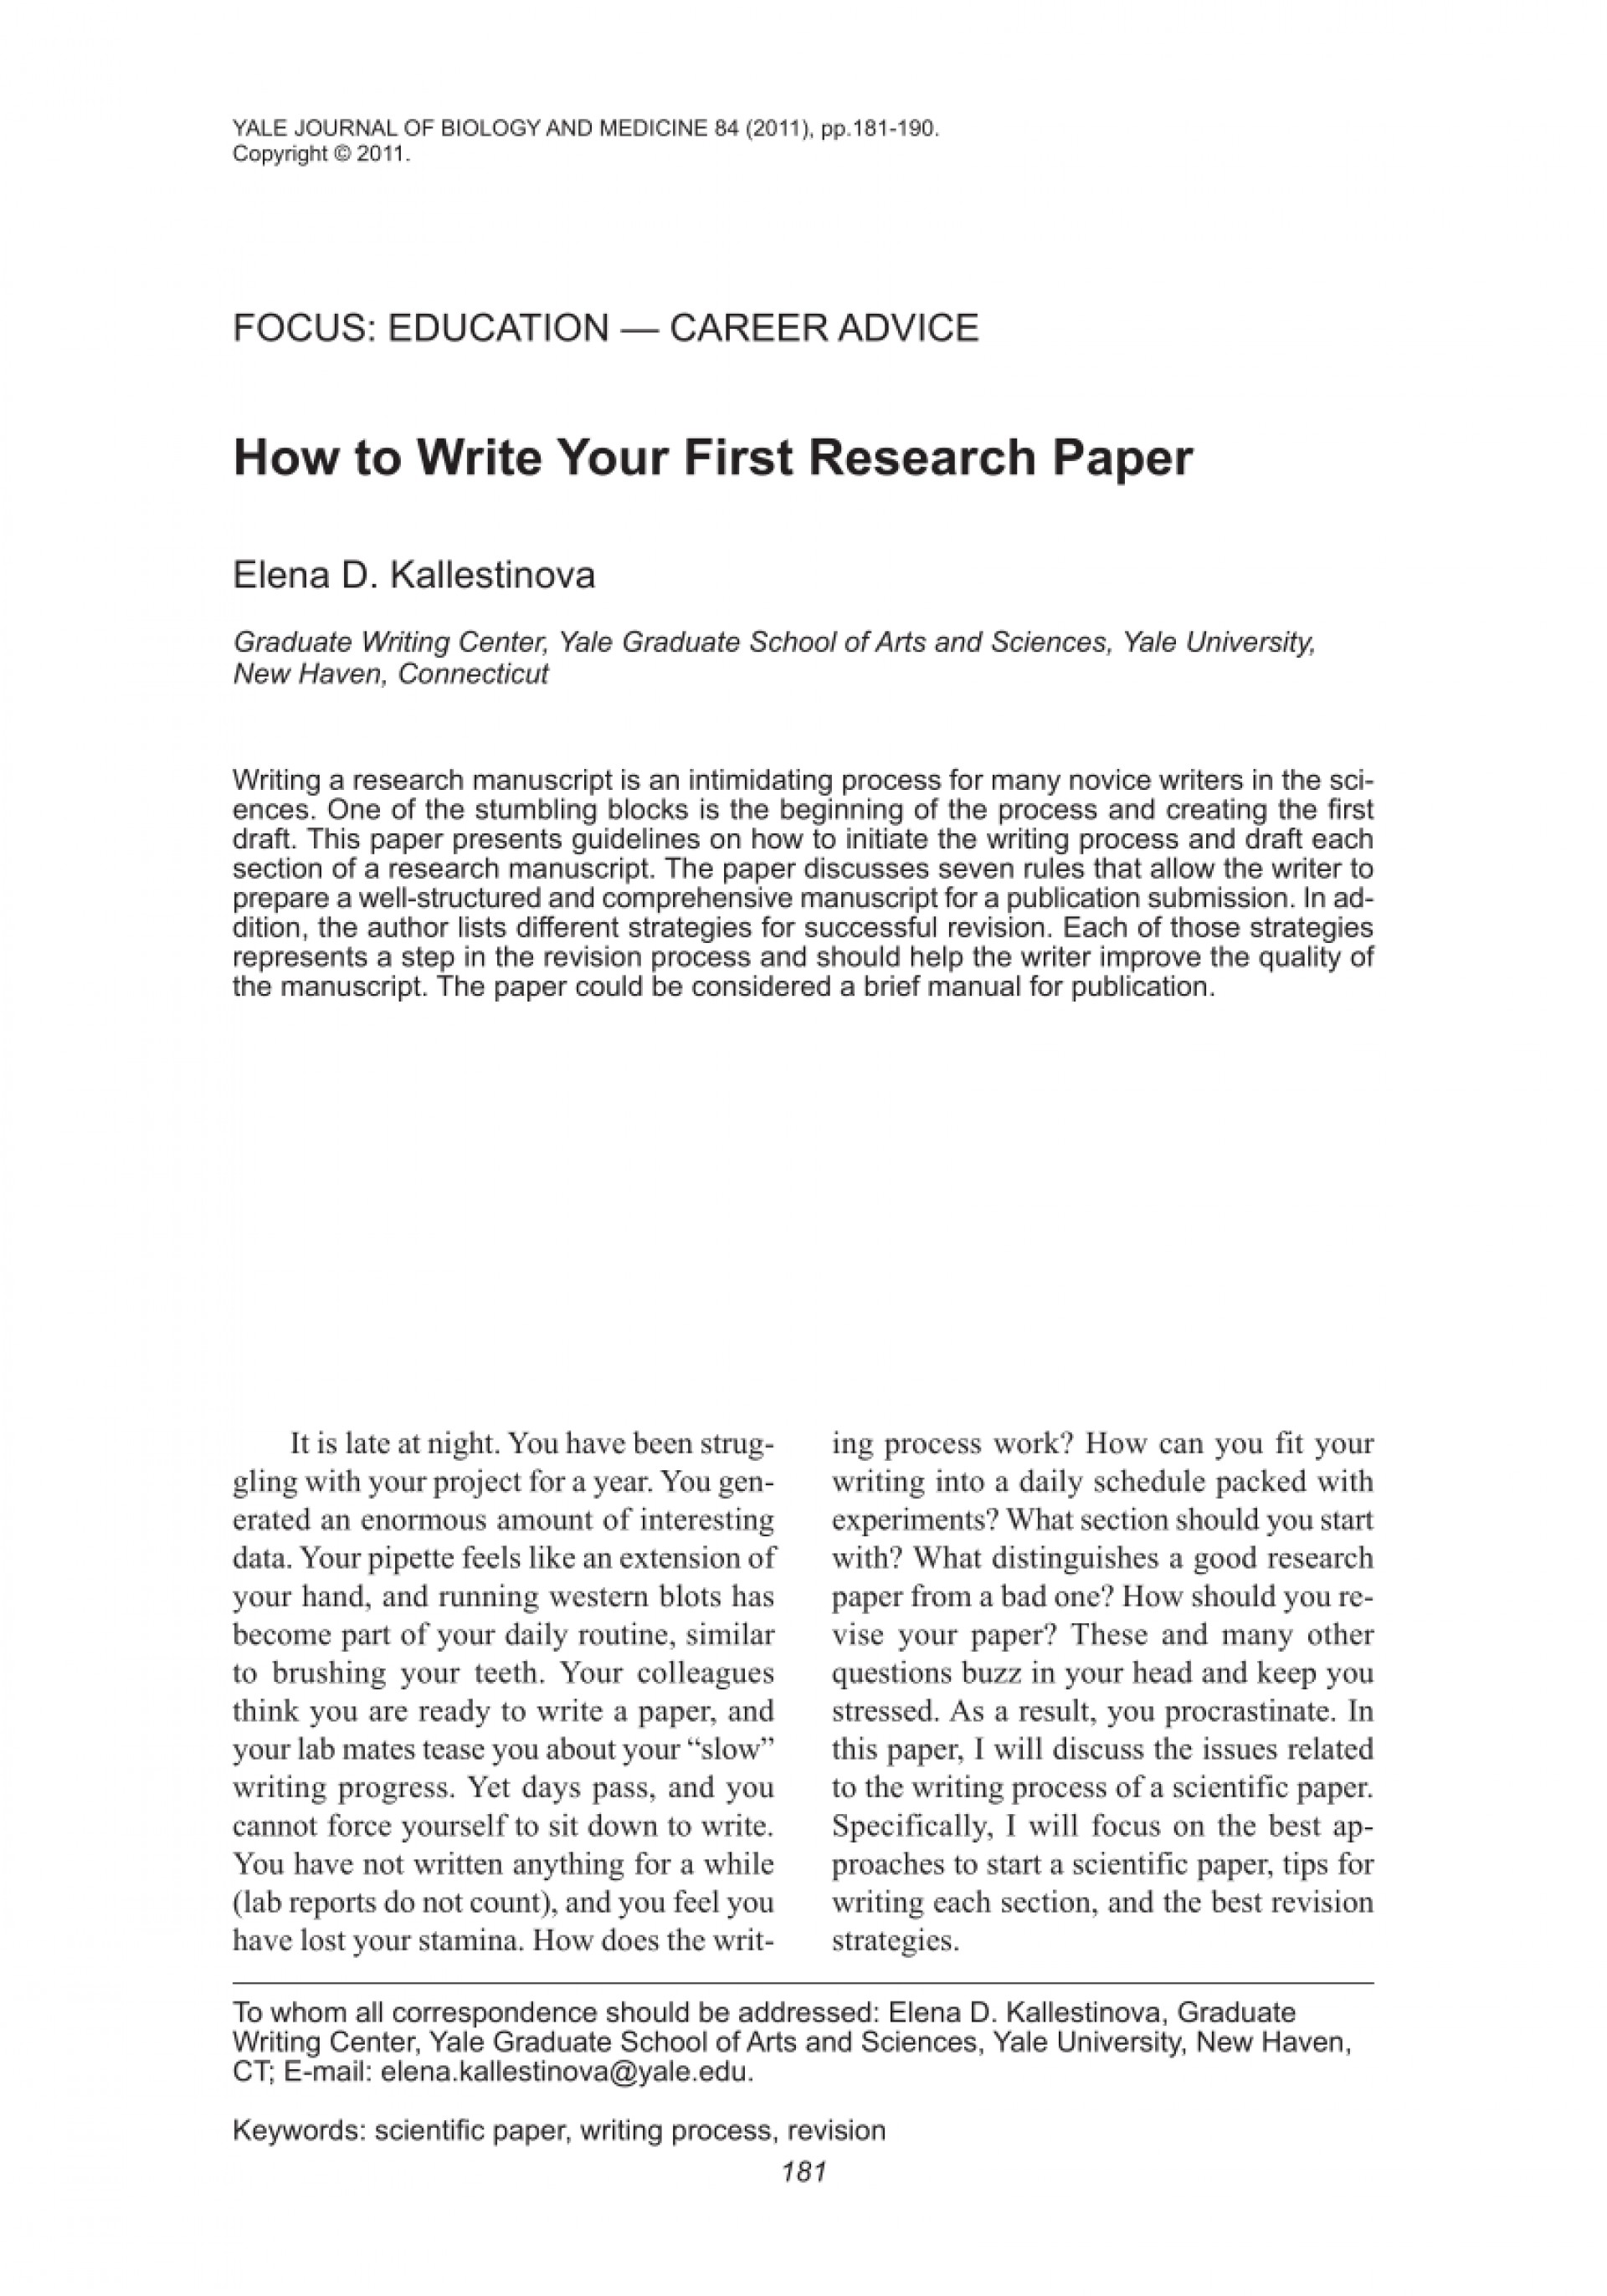 017 Largepreview Research Paper Biology Impressive Outline How To Write A Scientific 1920